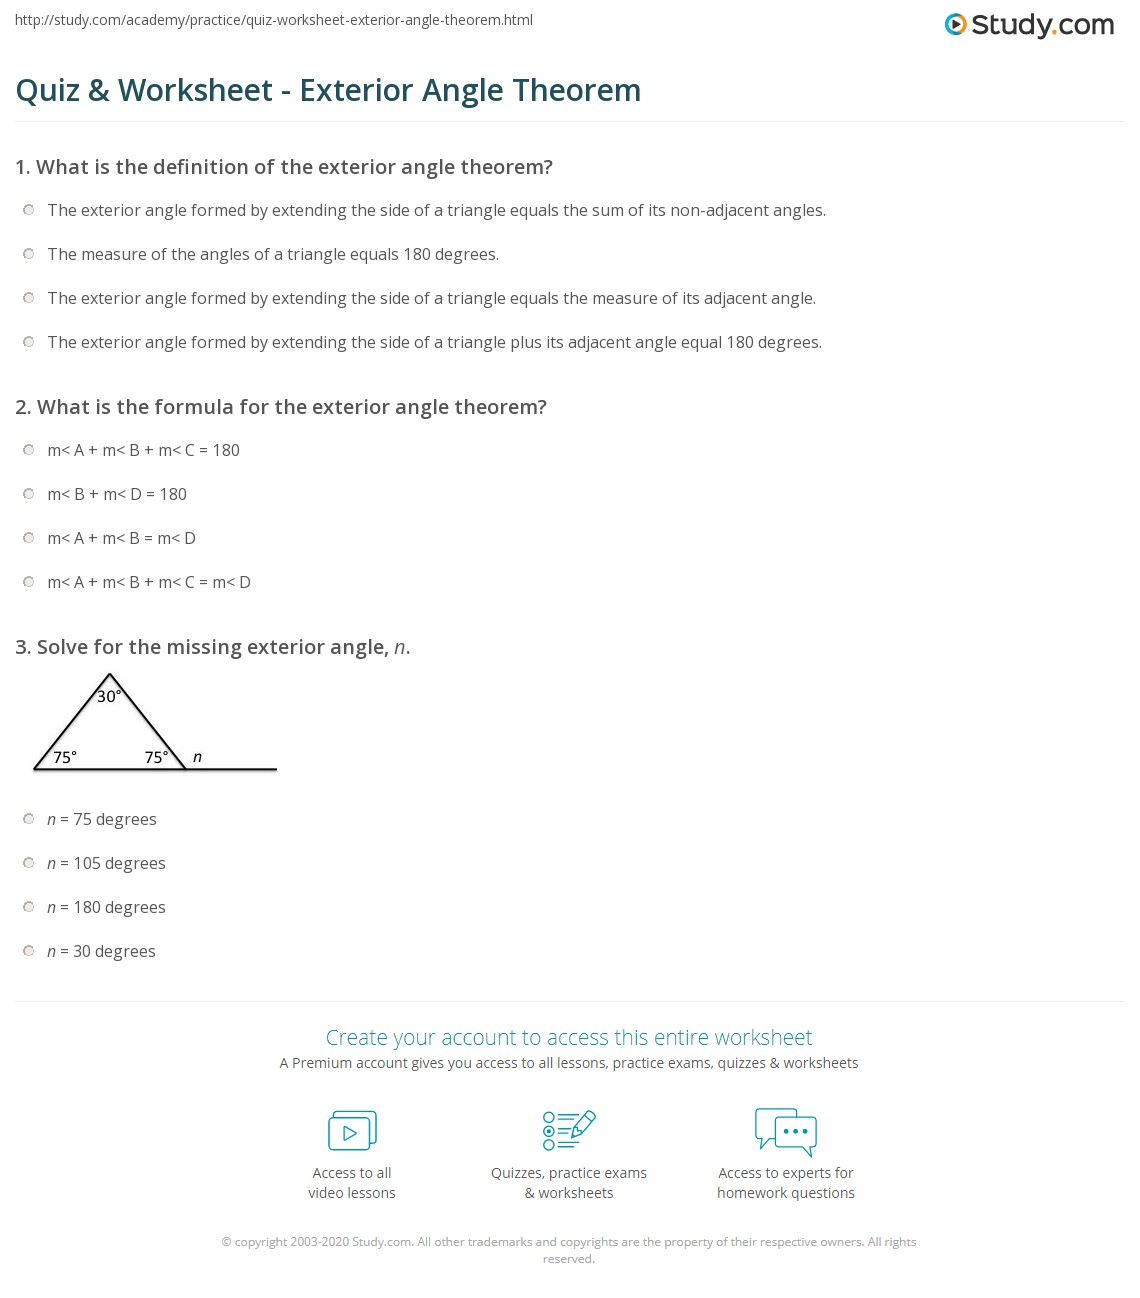 Free Worksheet Exterior Angle Theorem Worksheet quiz worksheet exterior angle theorem study com print definition formula worksheet